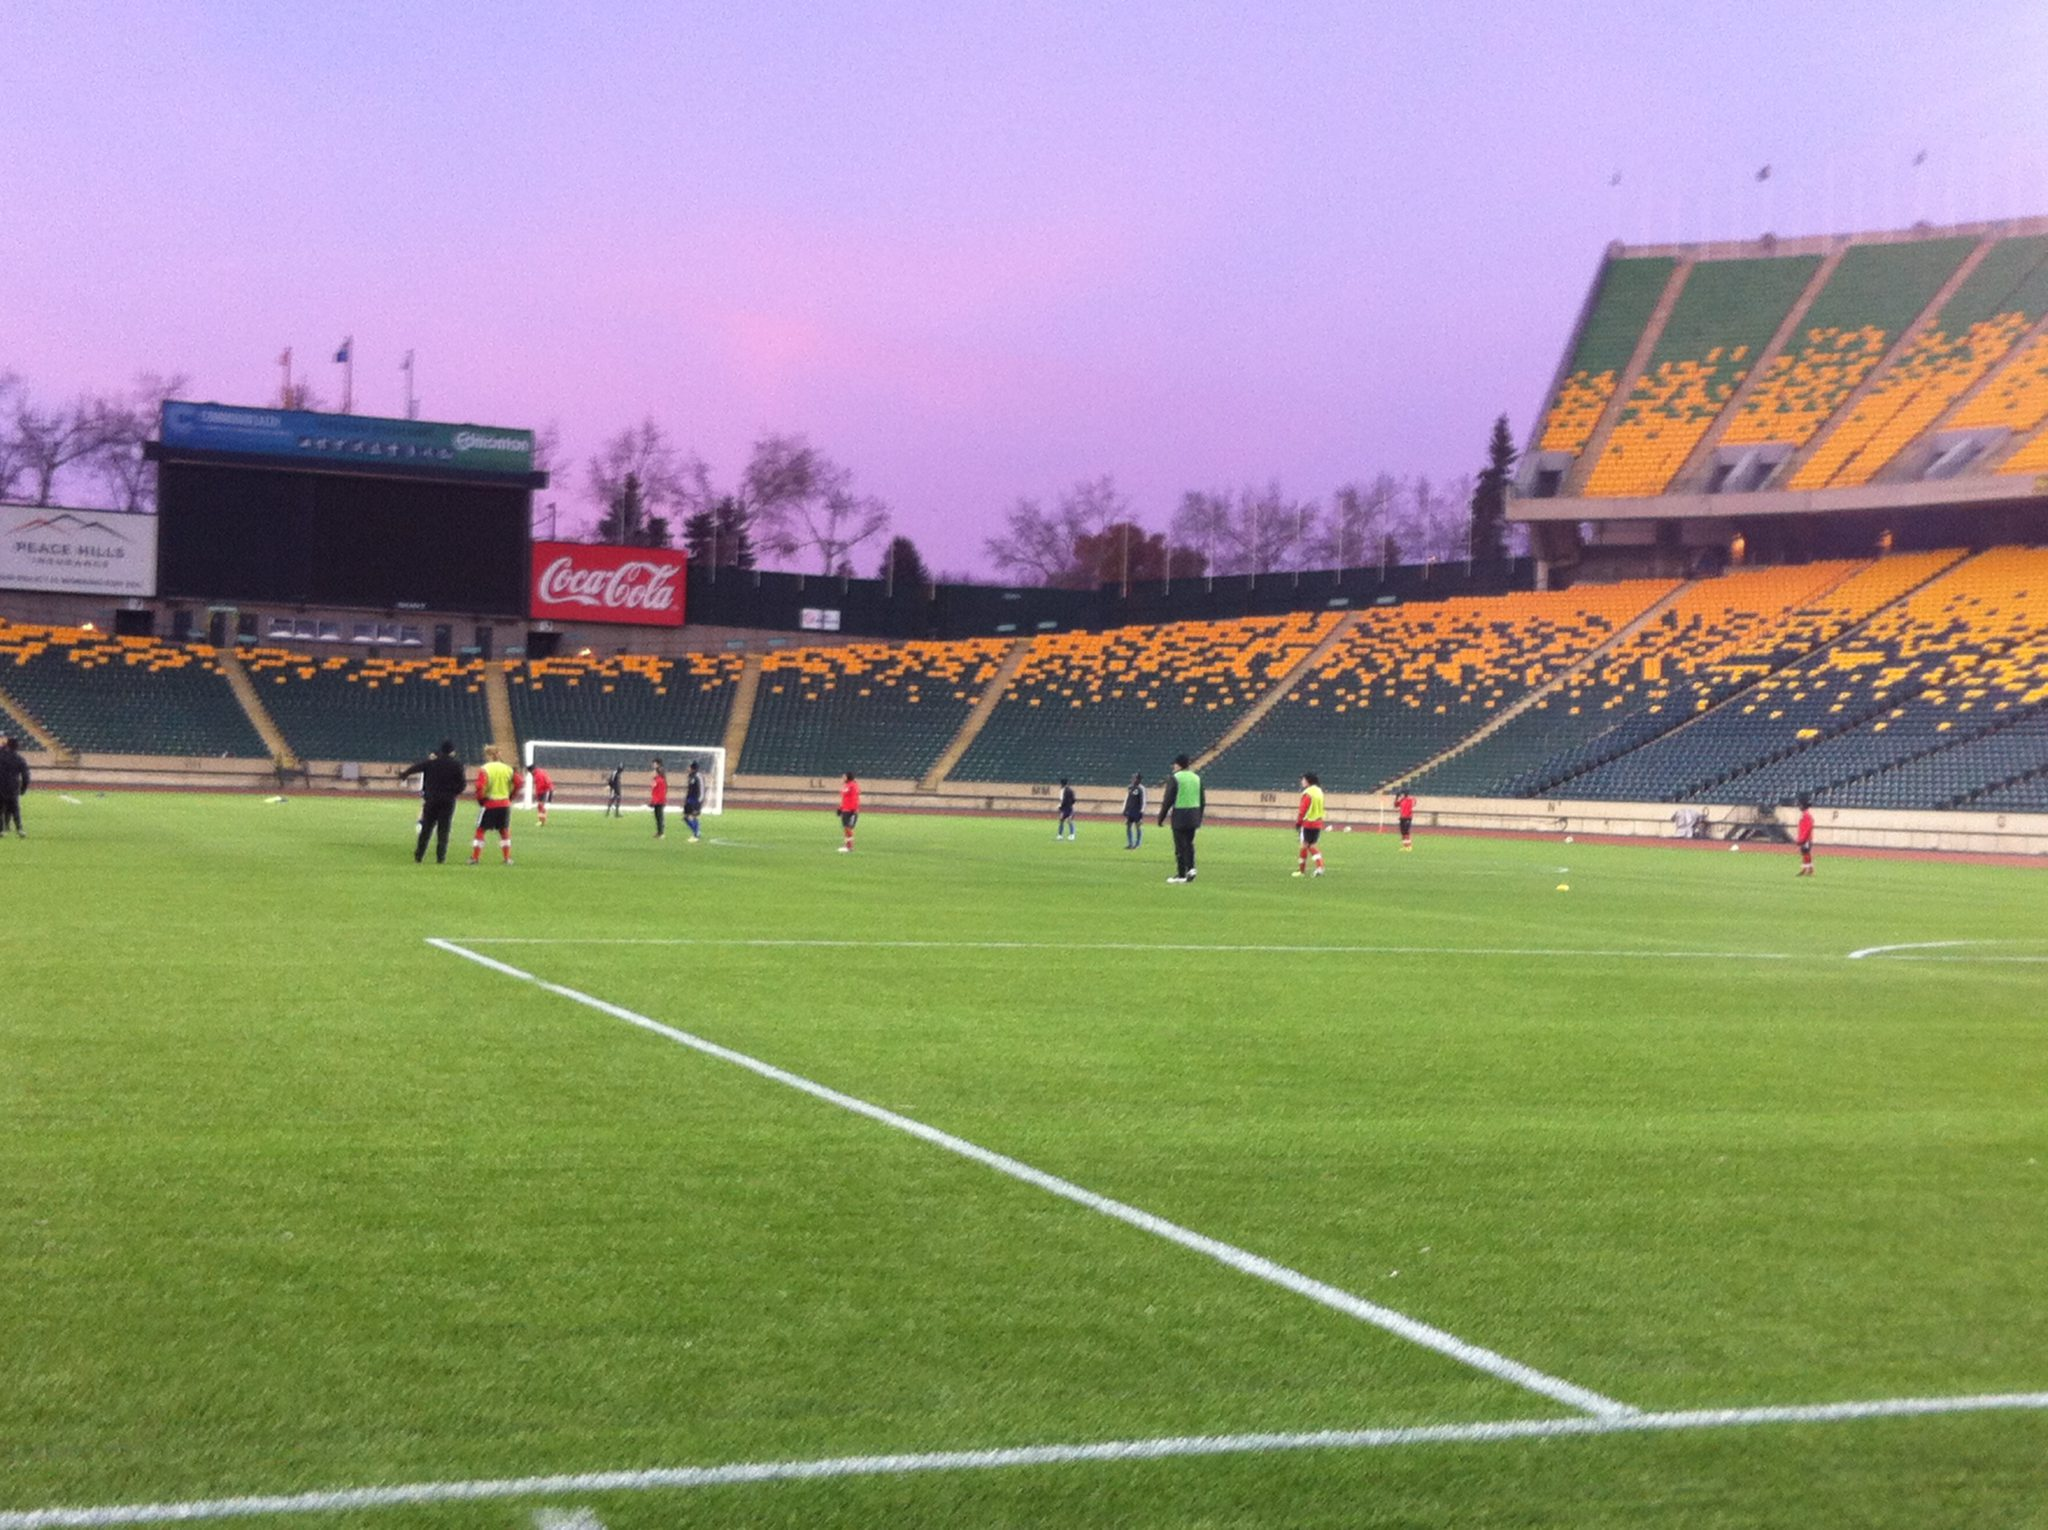 Edmonton Commonwealth Stadium (pictured) is one of six venues scheduled to use artificial turf at next year's Women's World Cup. (Photo Copyright Harjeet Johal for The Equalizer)